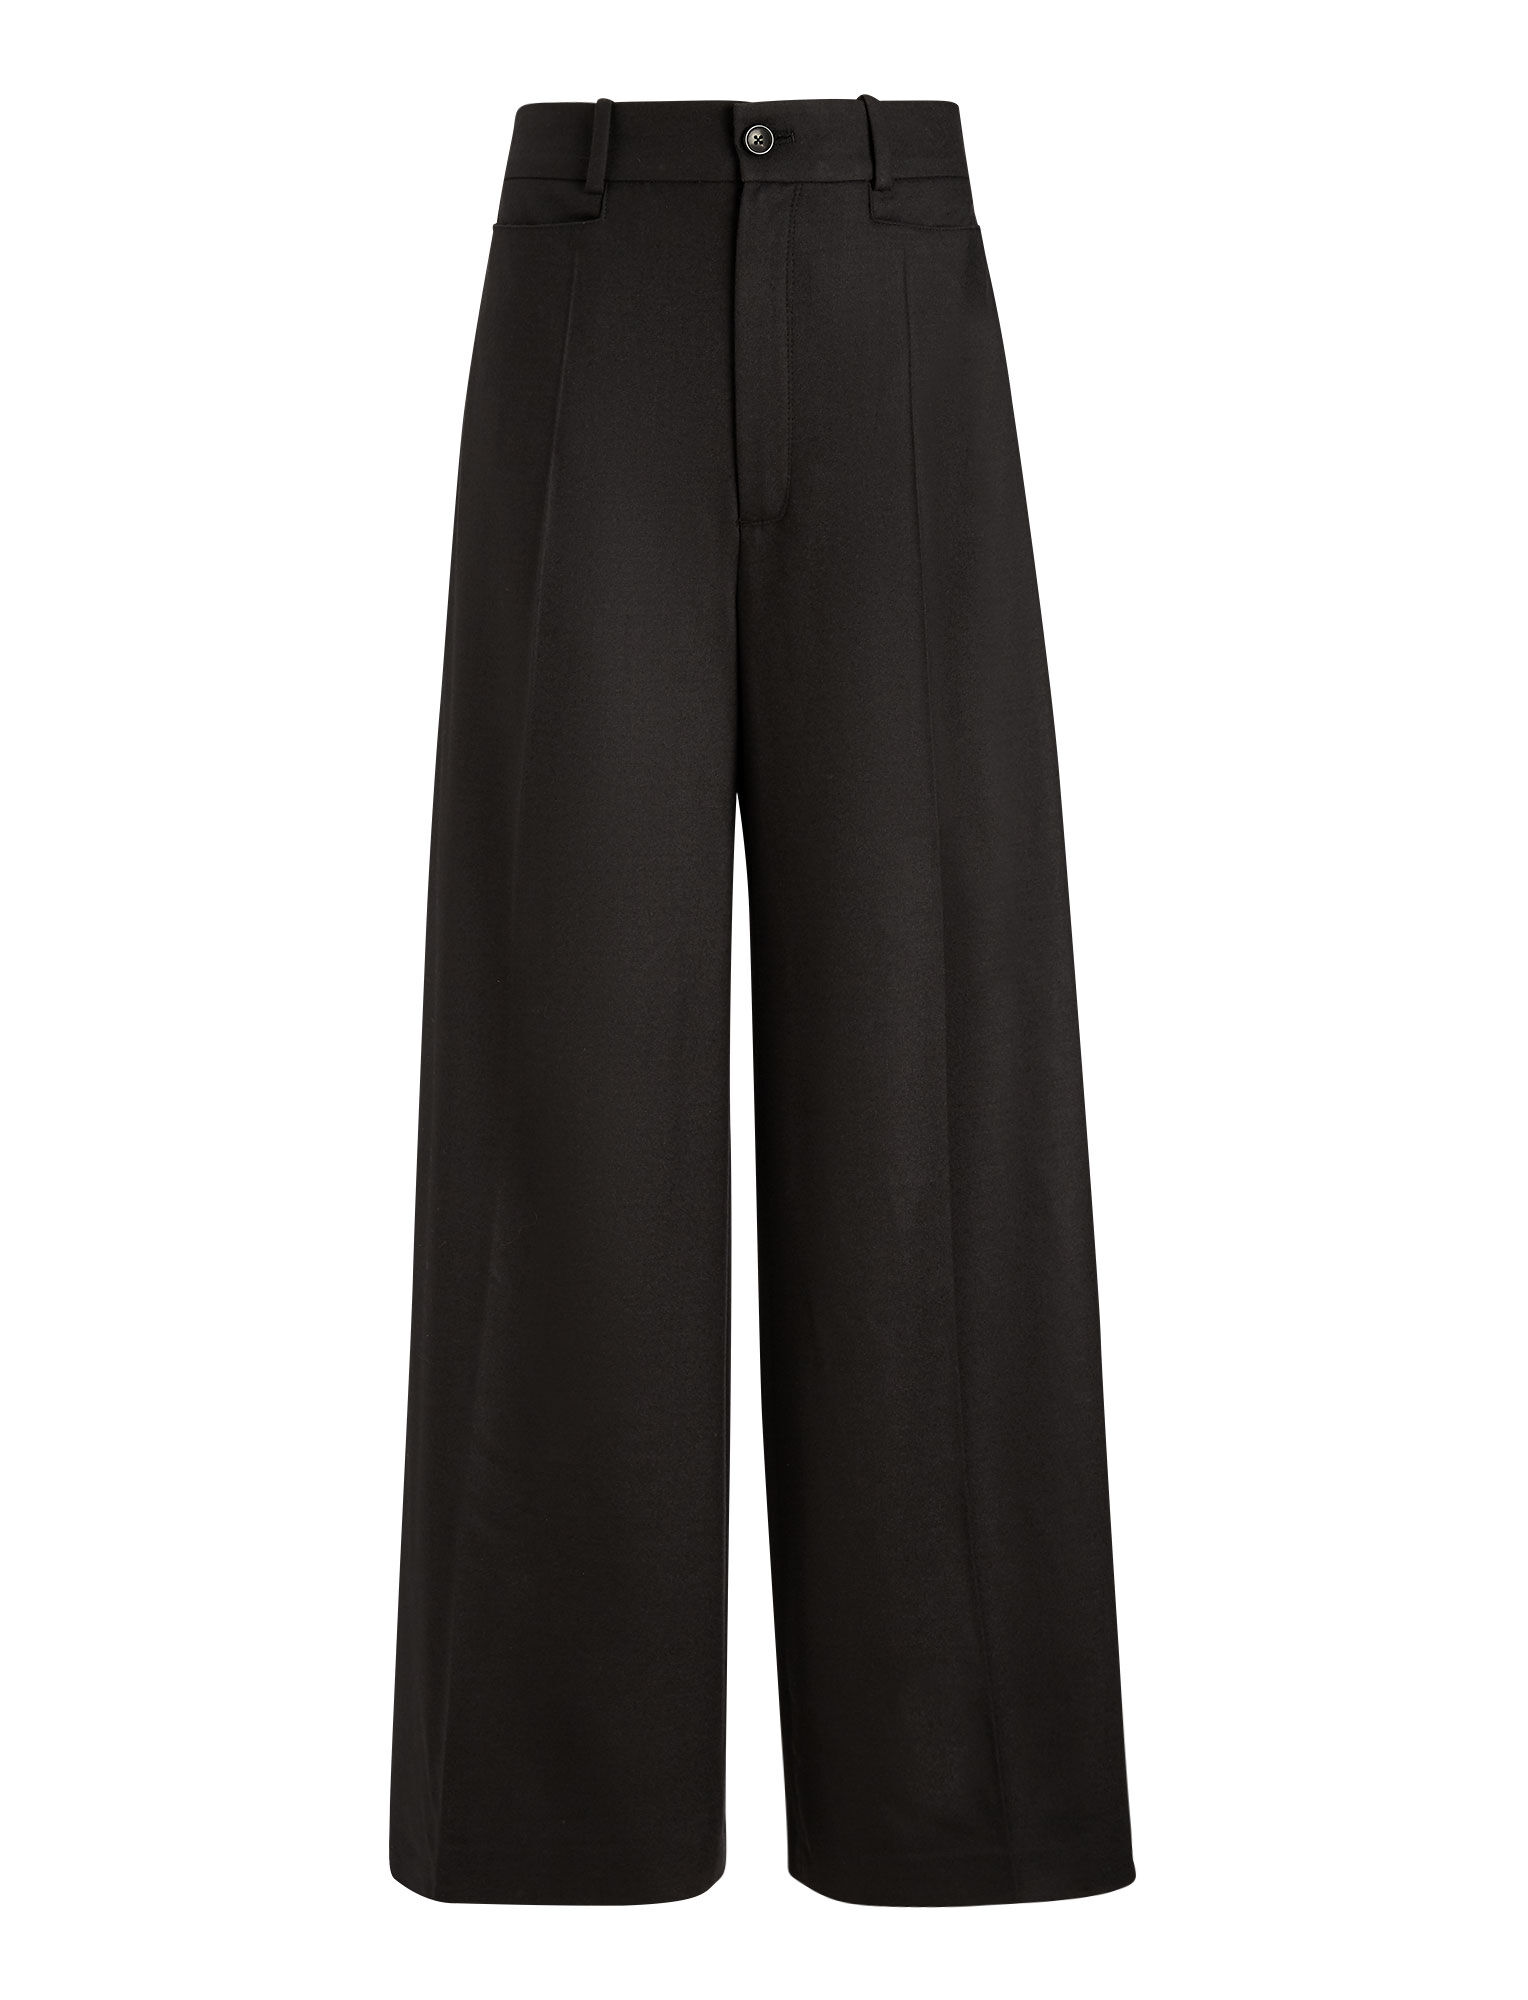 Joseph, Dana Flannel Stretch Trousers, in BLACK